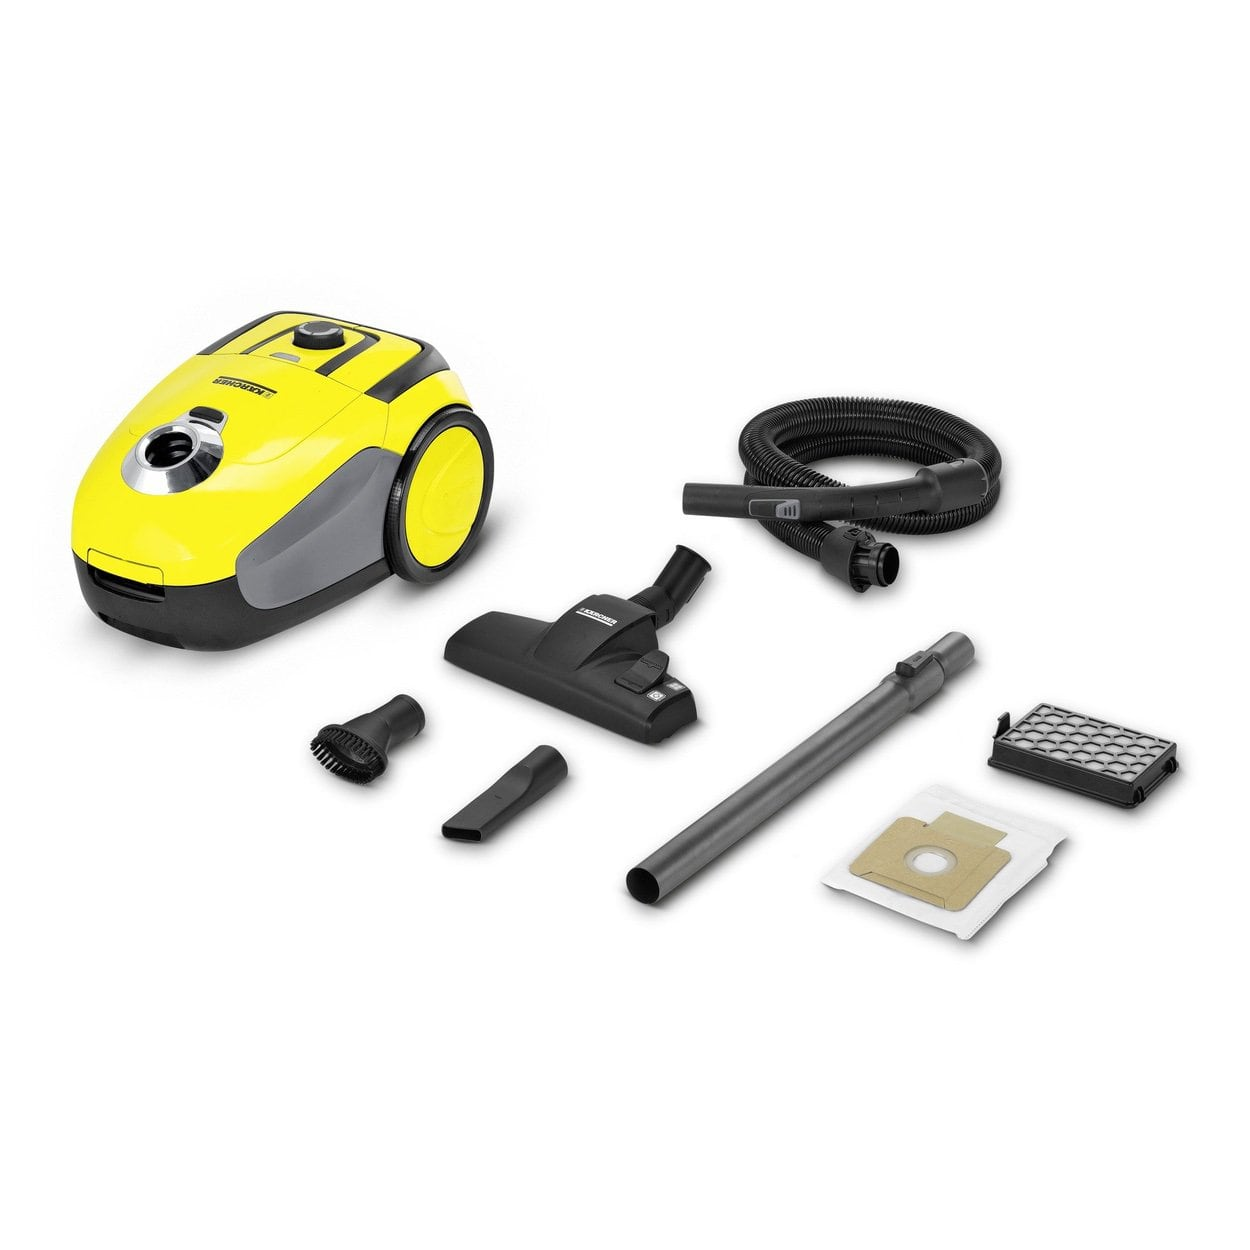 Karcher VC2 Dry Vacuum Cleaner